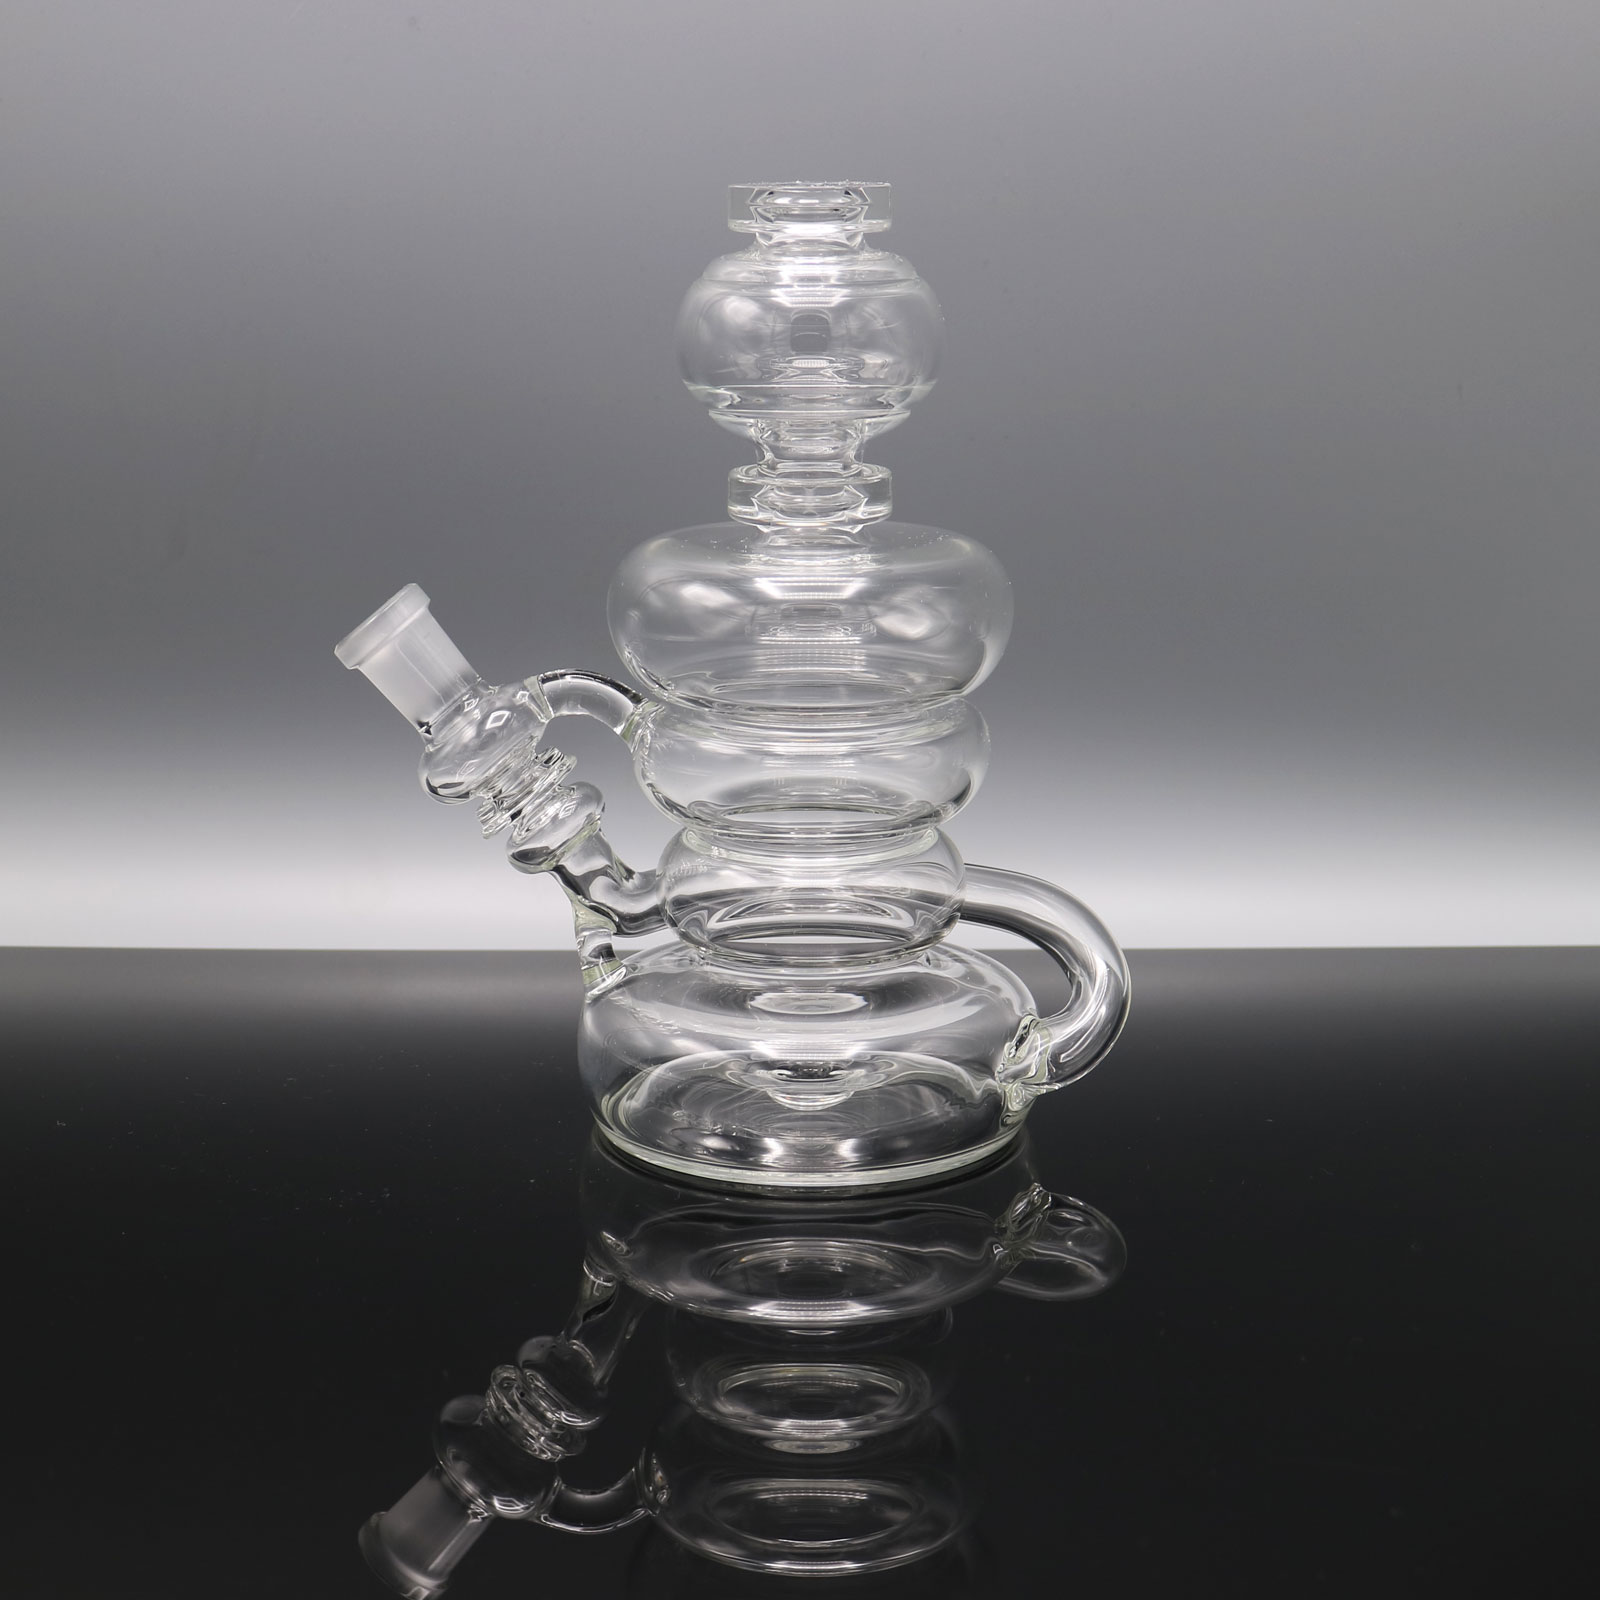 Mike Philpot – Large Clear Spinnerjet Set